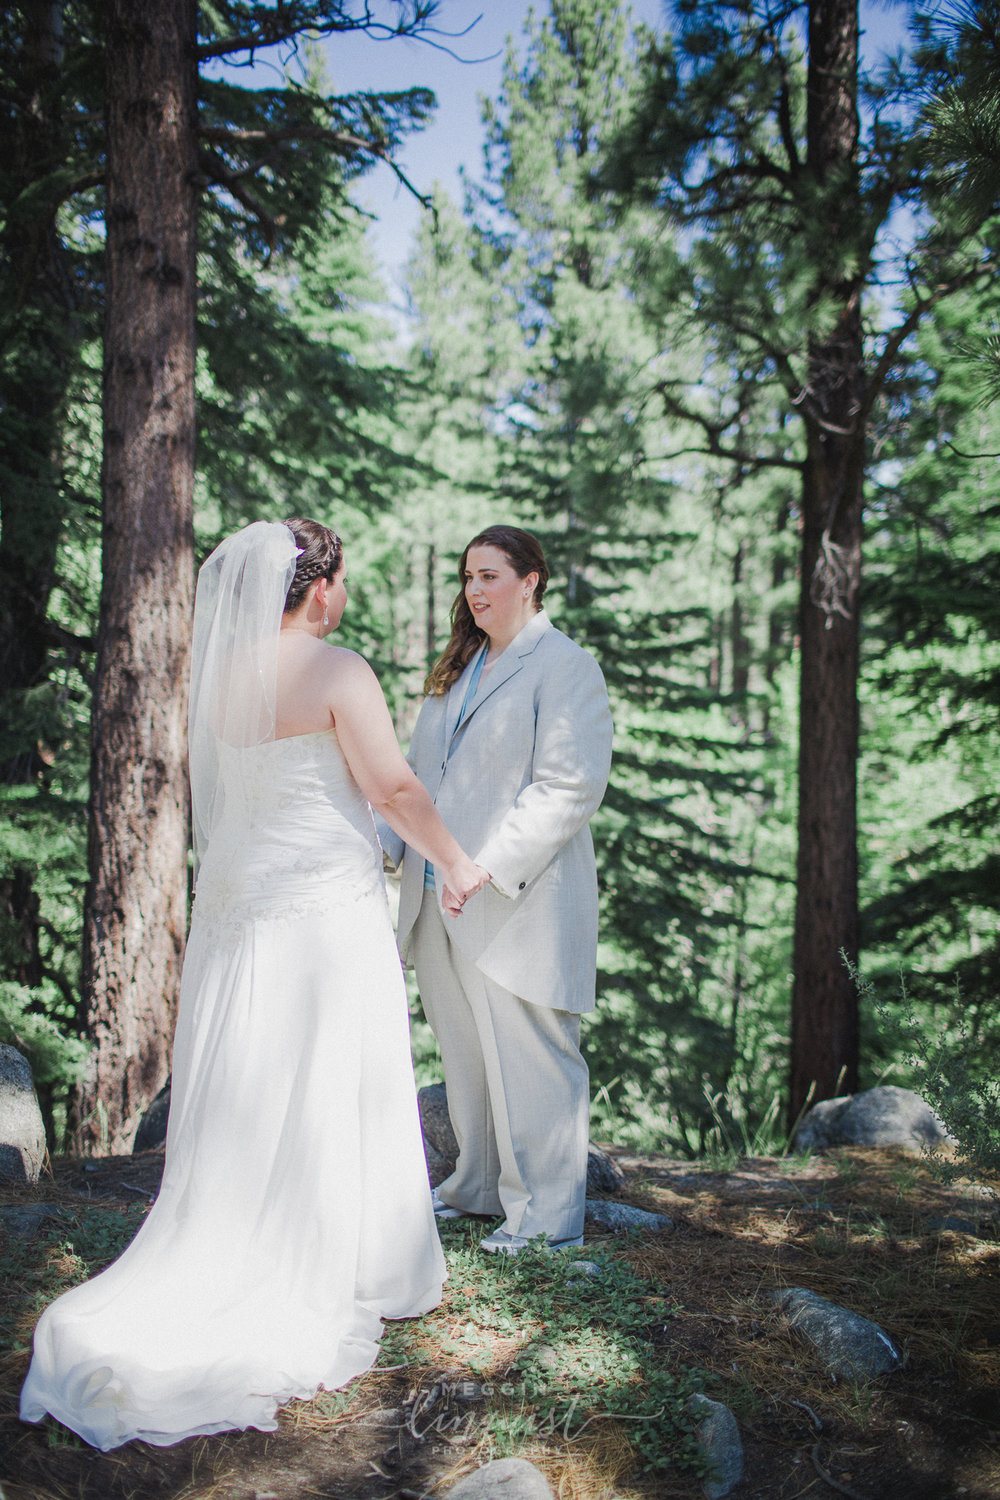 same-sex-wedding-reno-lake-tahoe-wedding-photographer-13.jpg